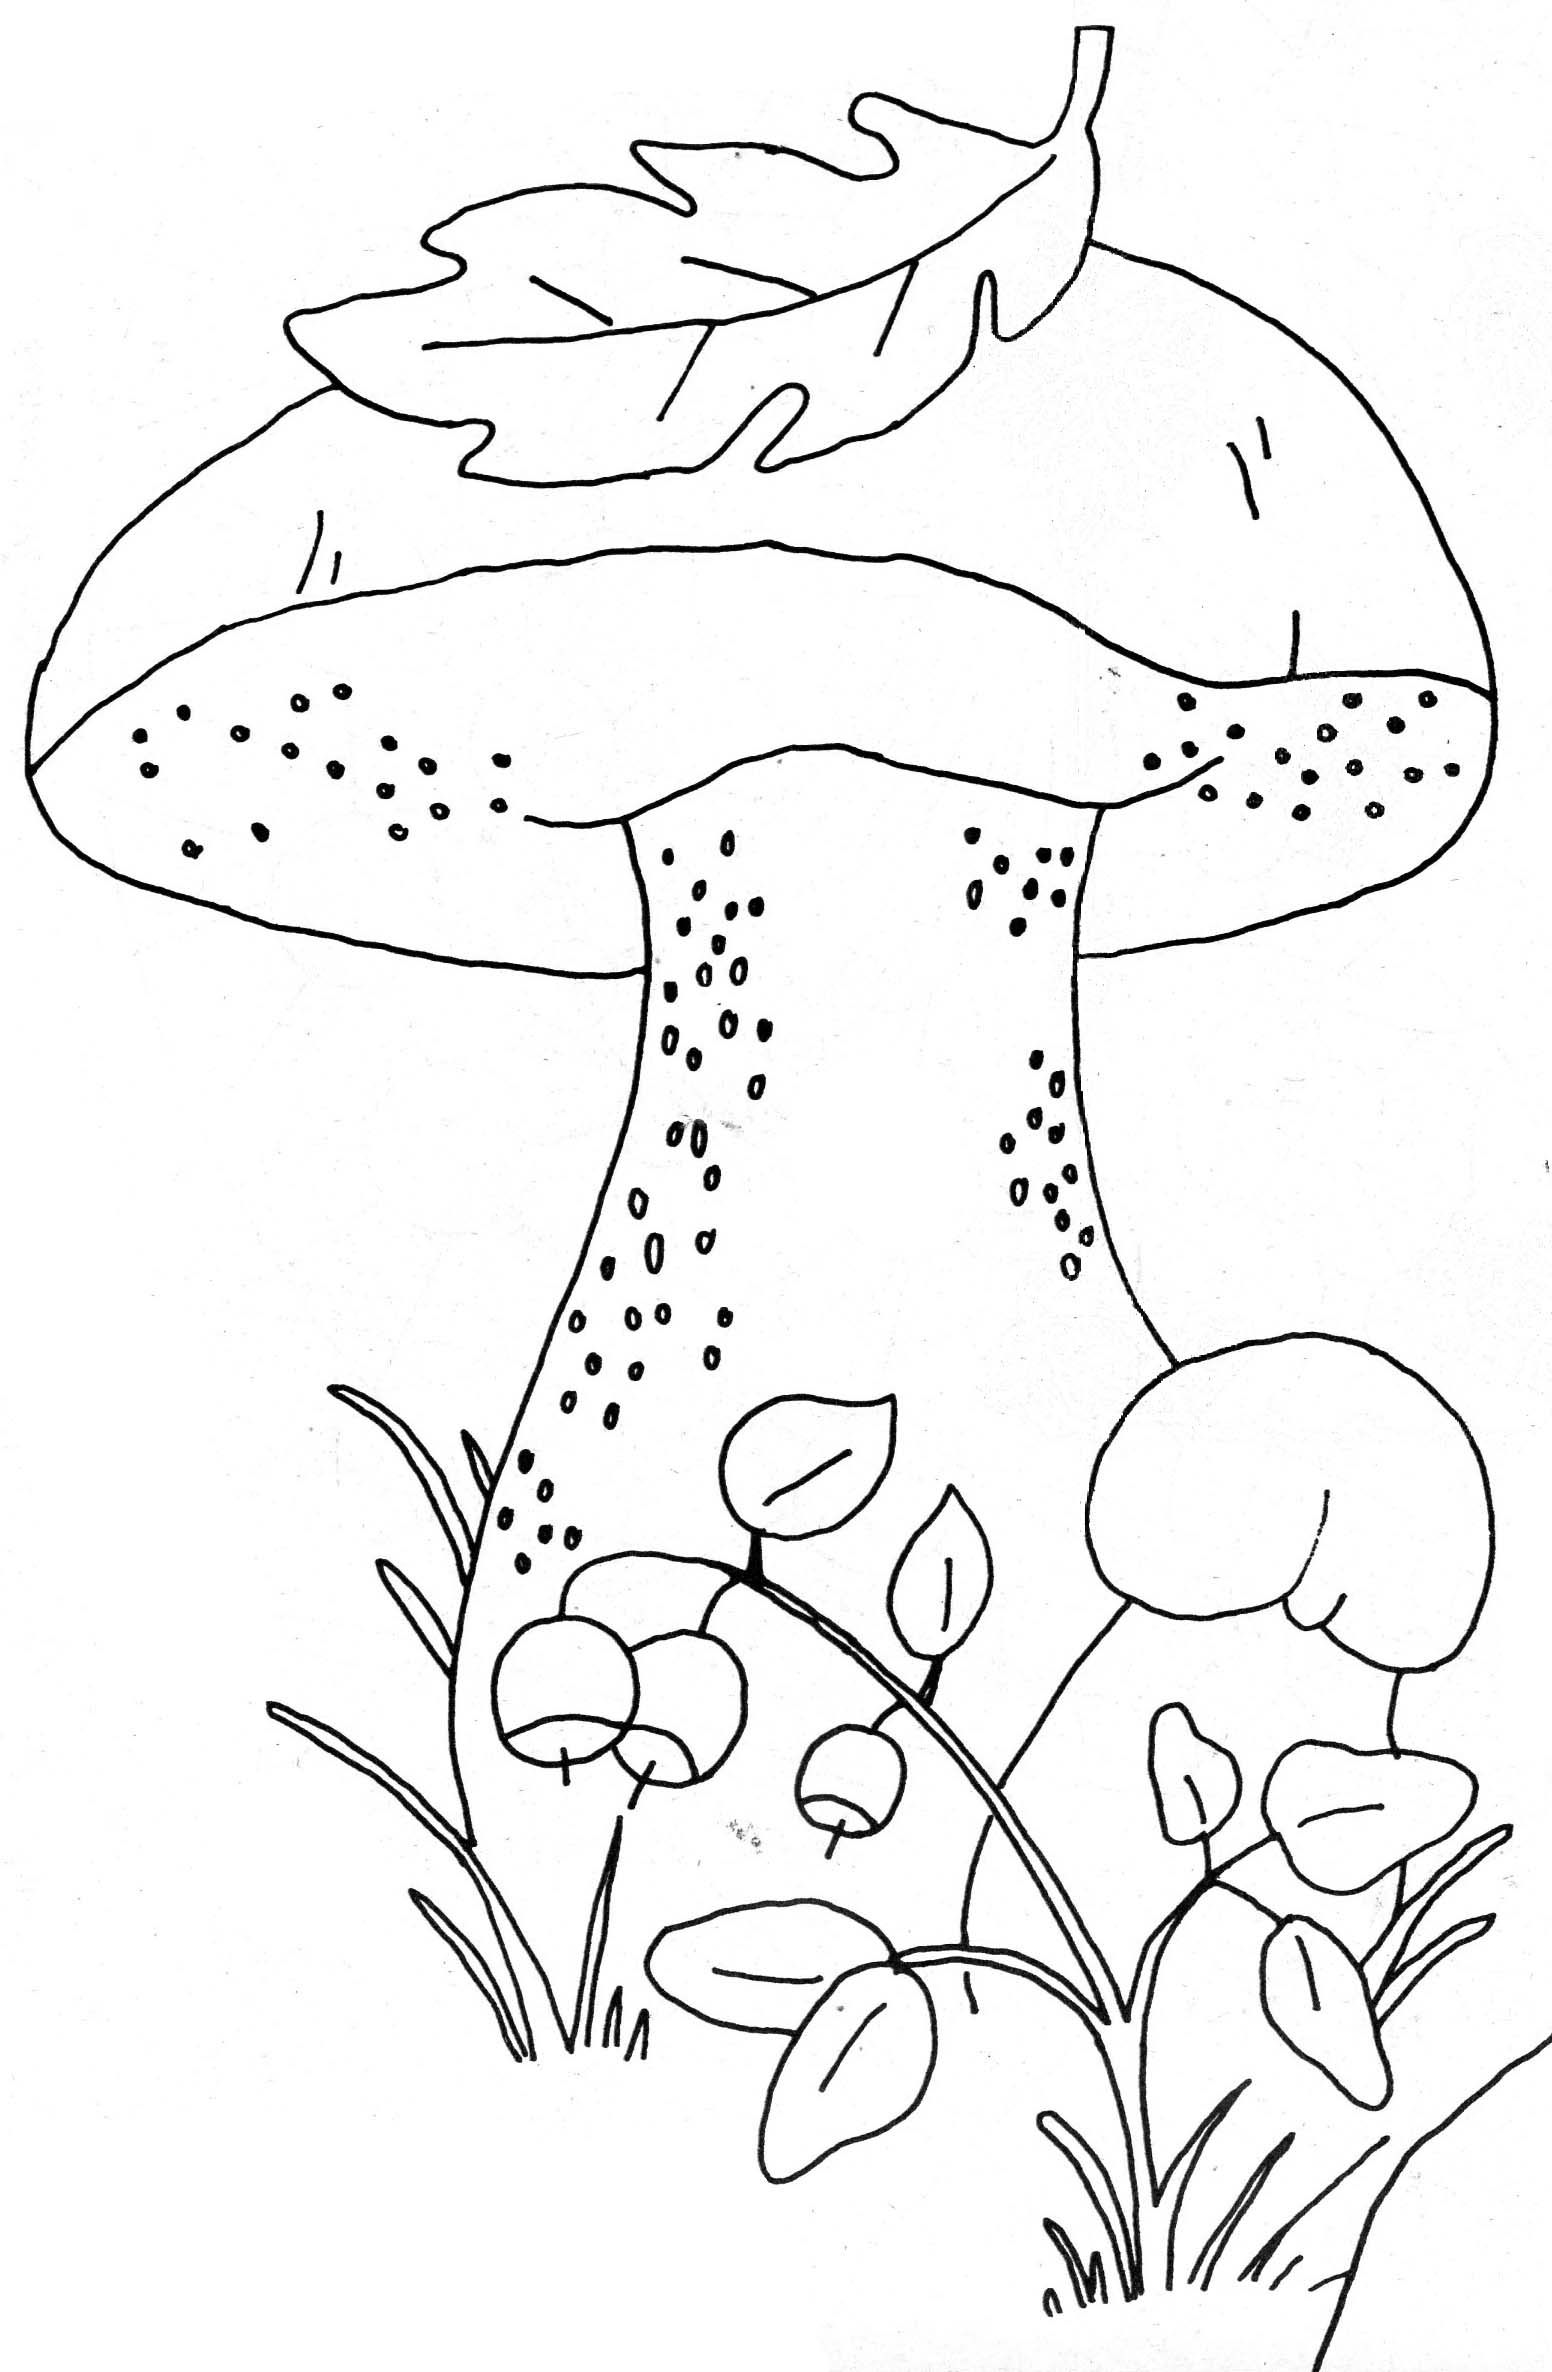 Embroidery Pattern Embroidery Patterns Hand Embroidery Designs Coloring Books